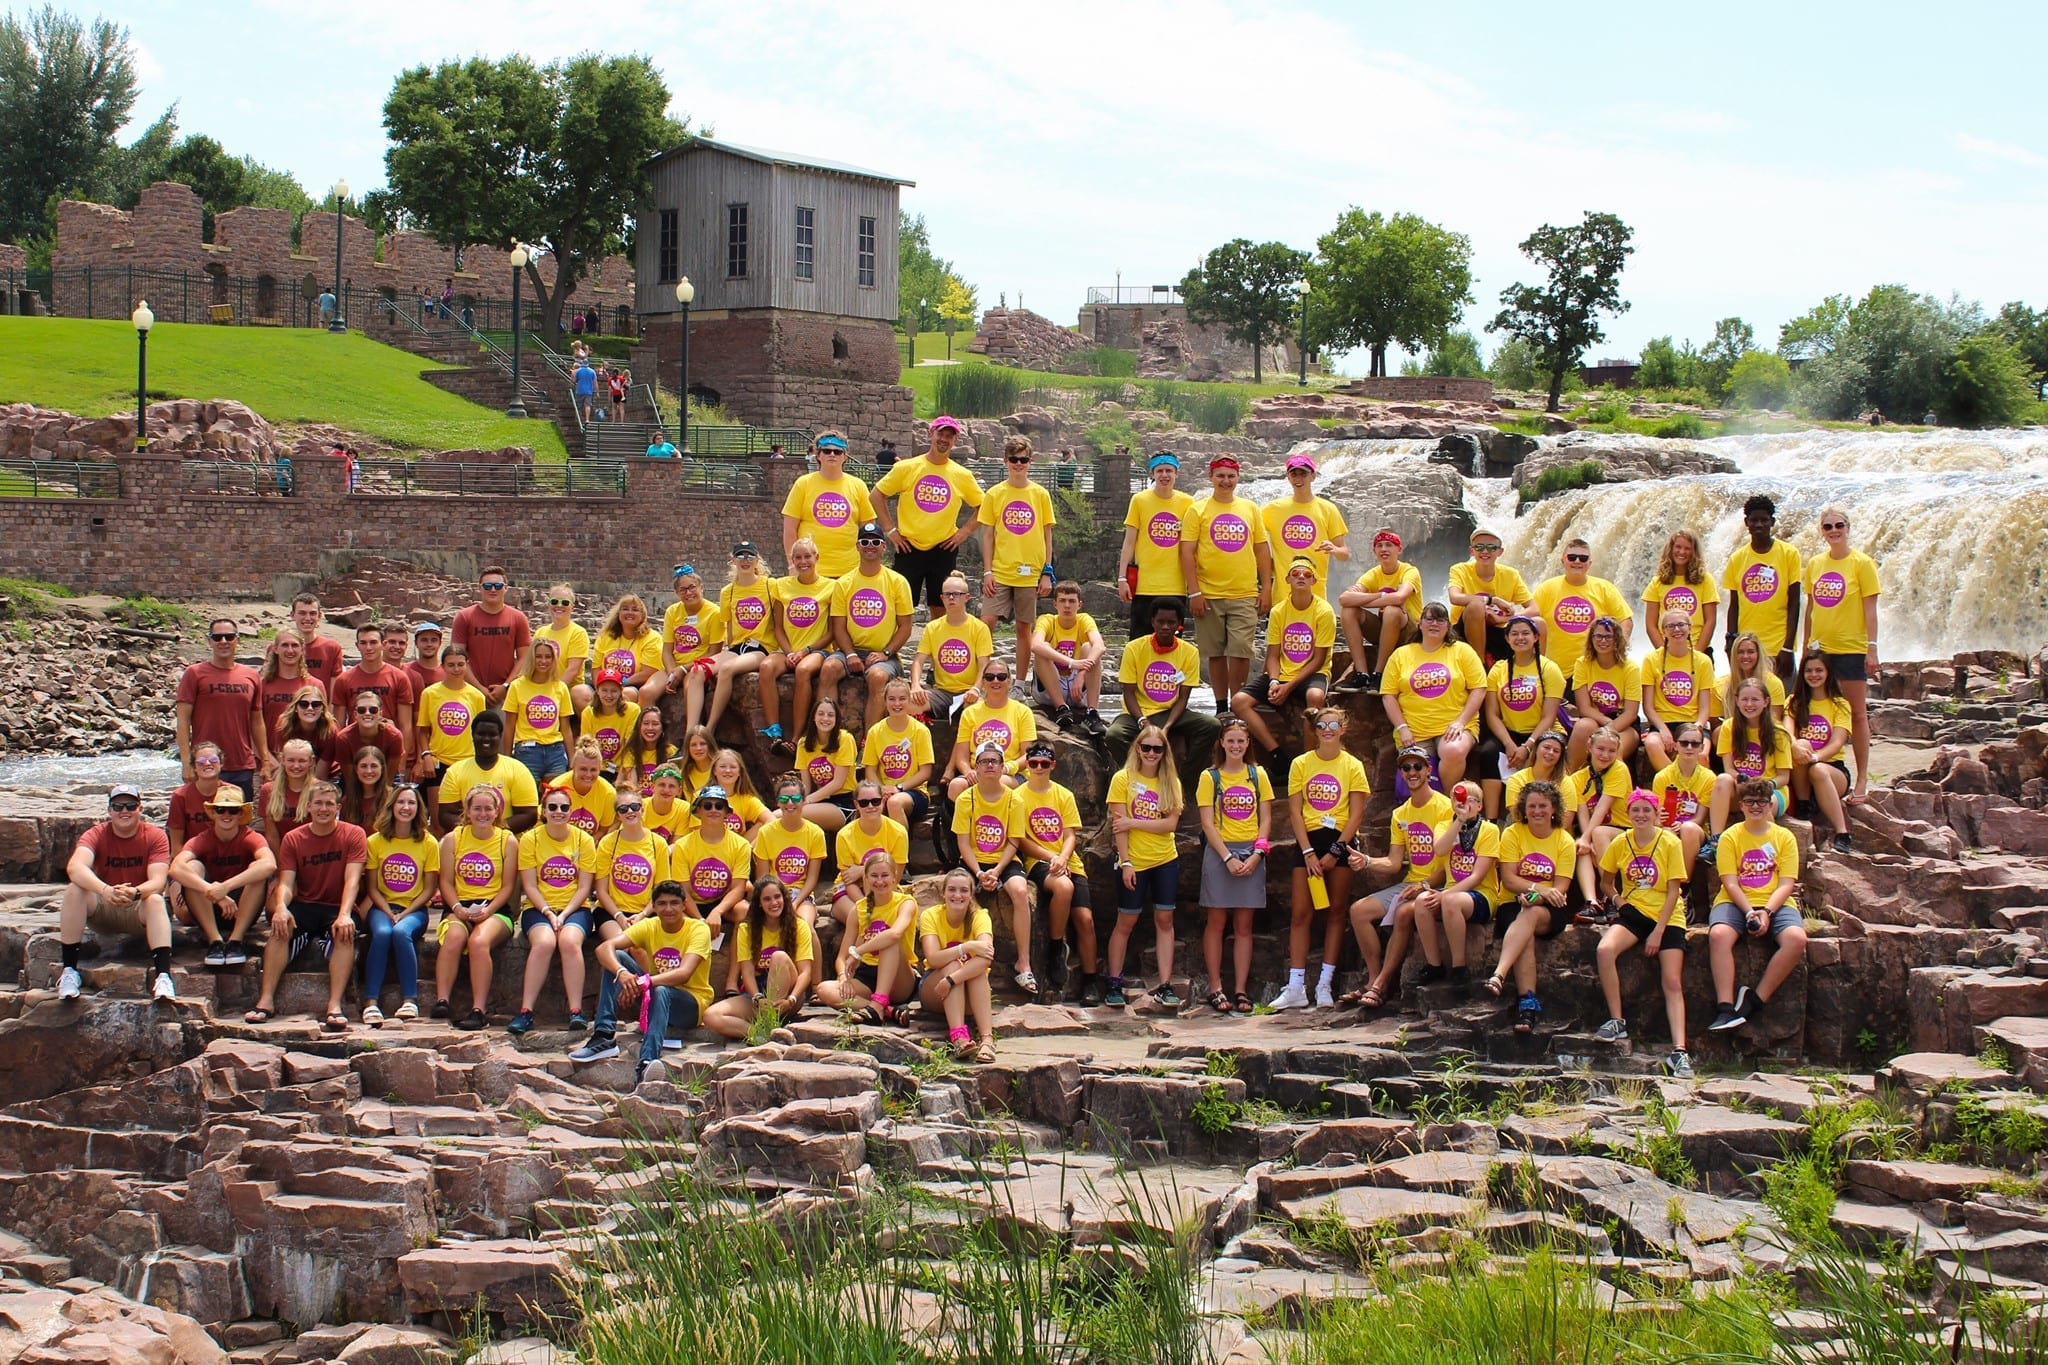 mission-trip-for-teens-in-Sioux Falls- South Dakota-USA-01